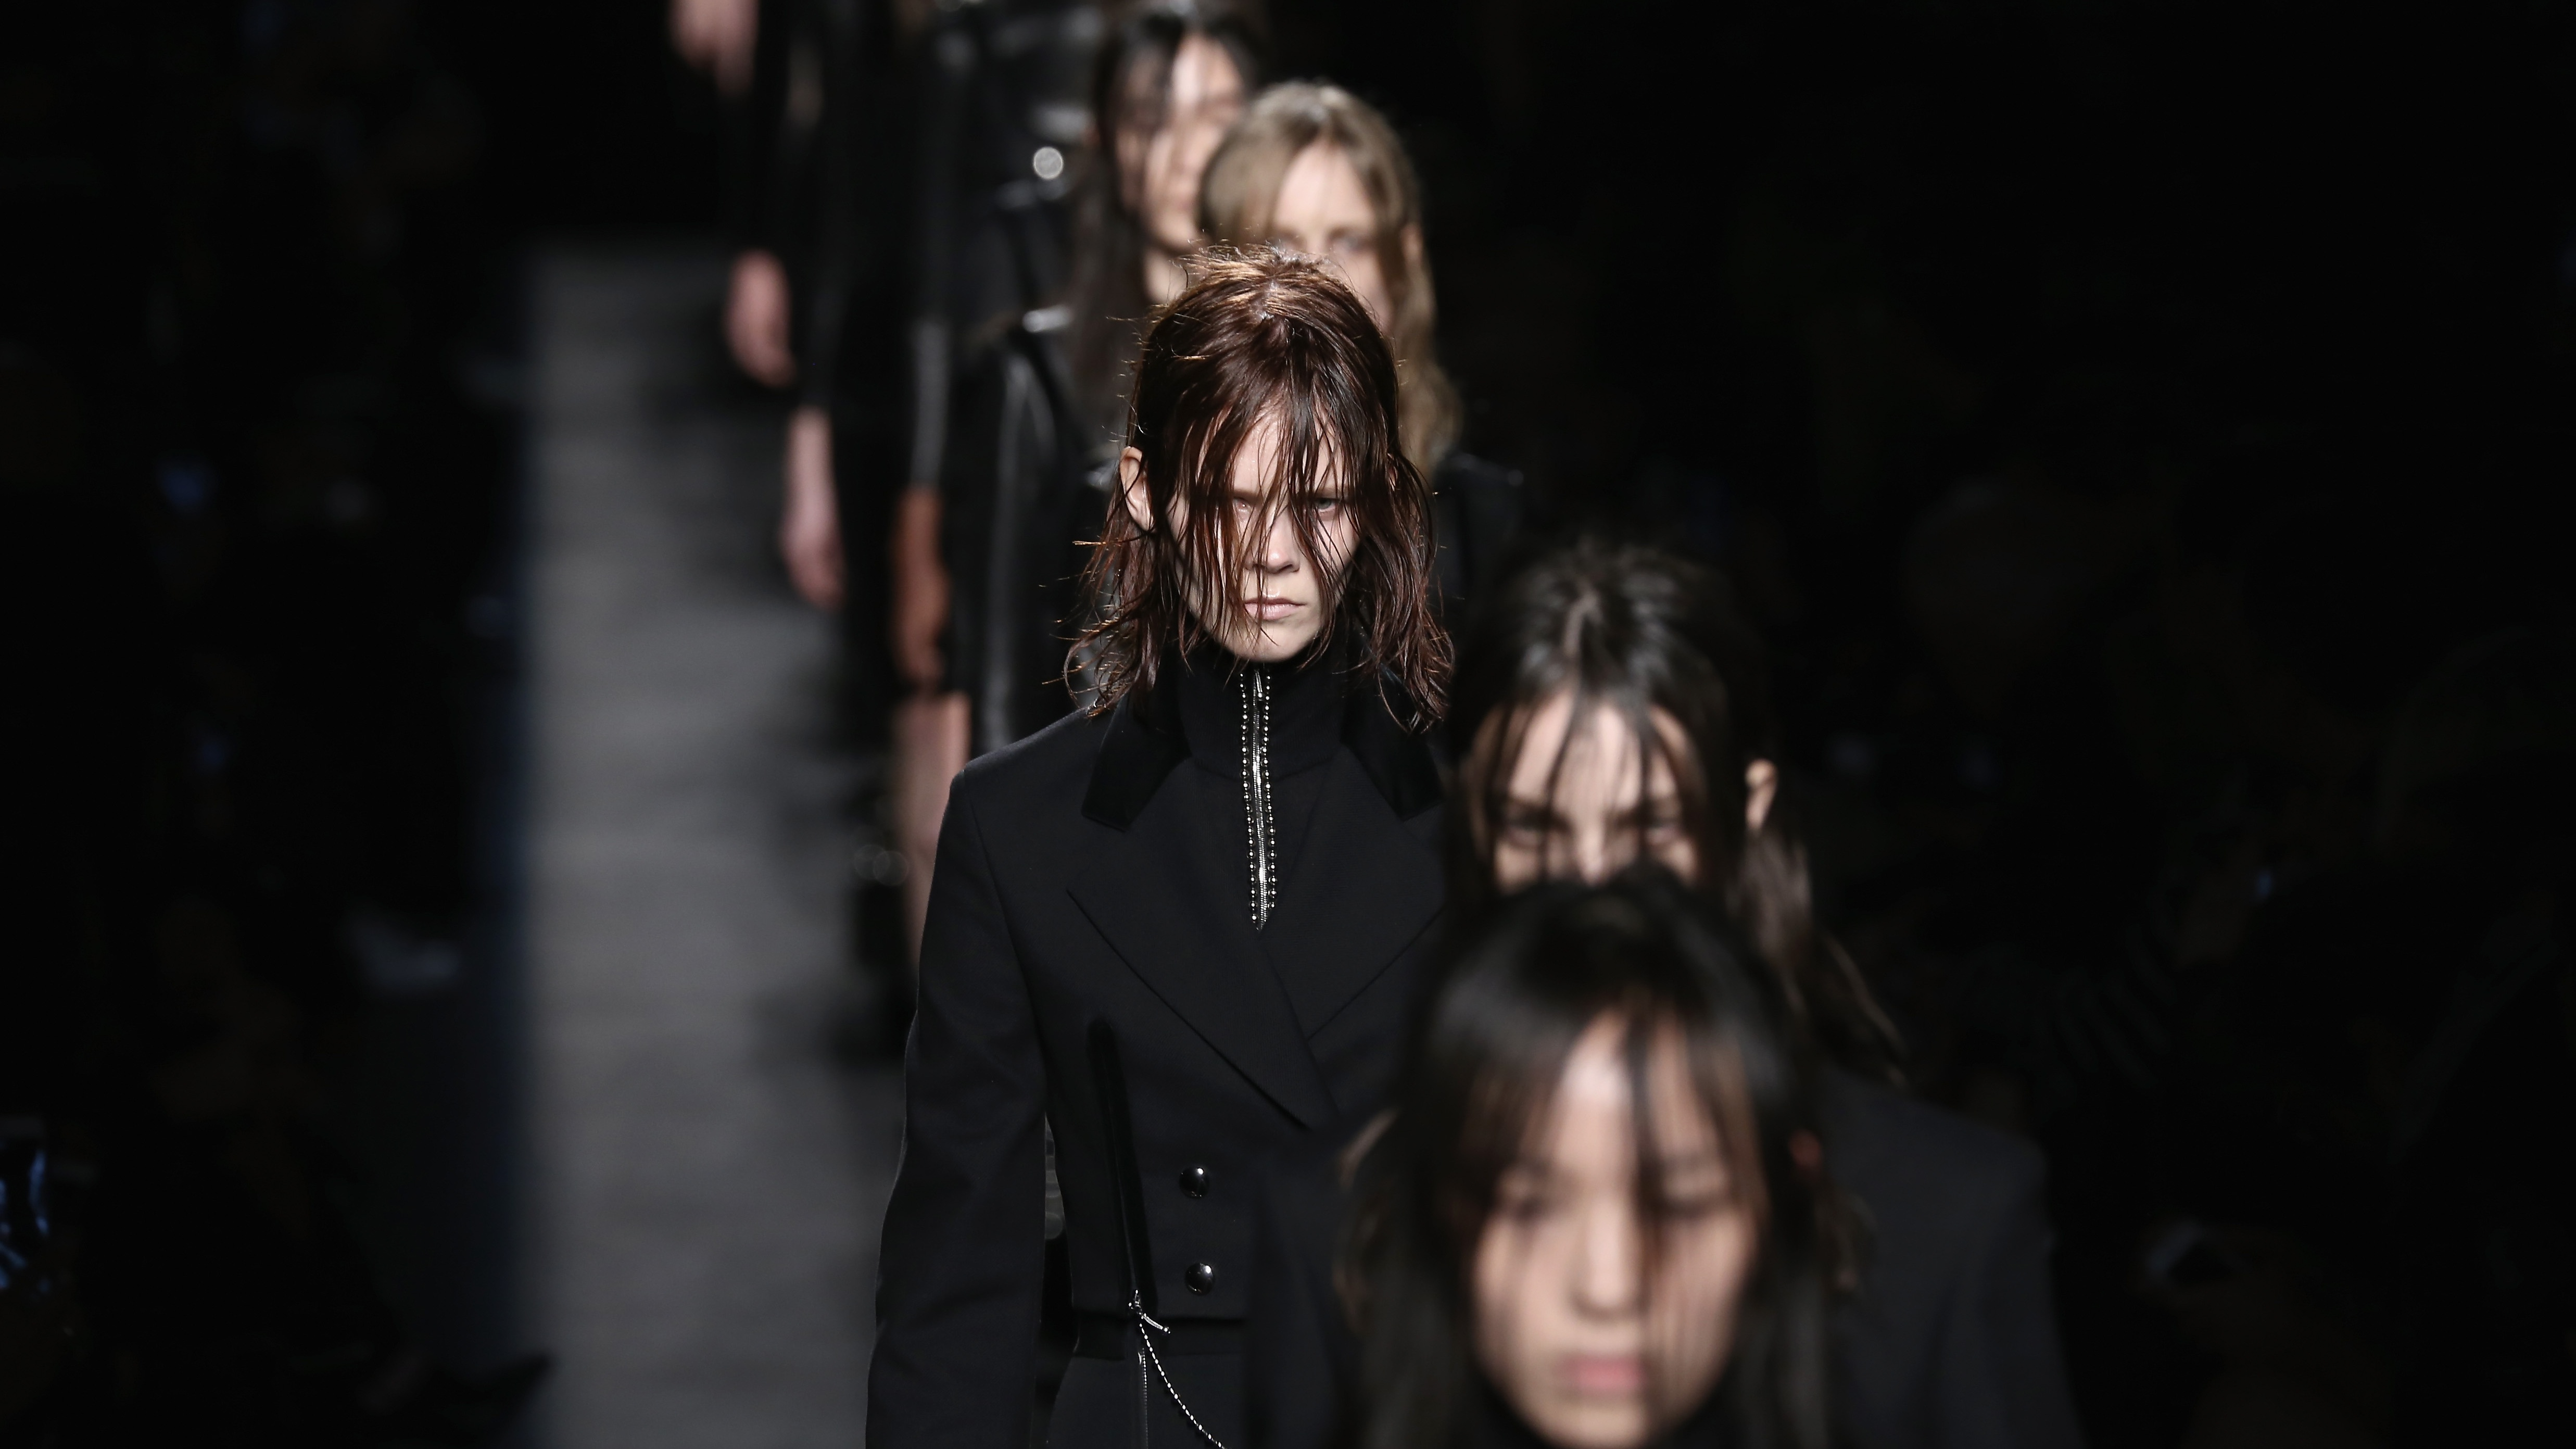 Models walk the runway at the Alexander Wang fashion show during Mercedes-Benz Fashion Week Fall 2015 at Pier 94 on February 14, 2015 in New York City.